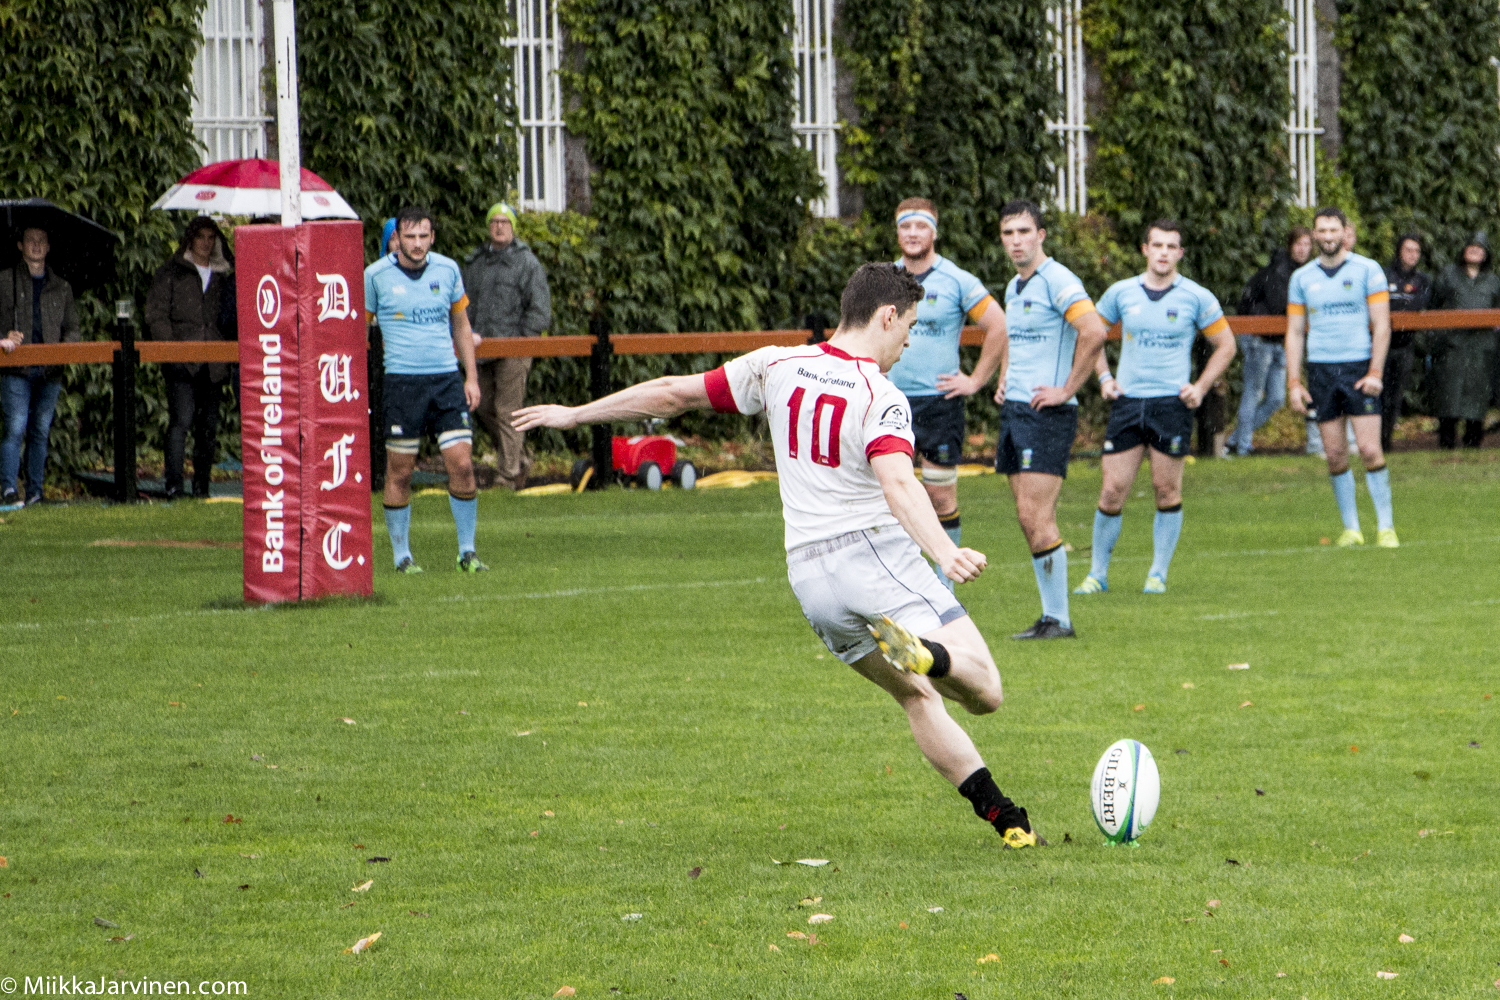 Irish rugby: UCD Rugby (blue shirt) and Trinity Rugby (white shirt) playing in rainy Dublin, Ireland 2016.